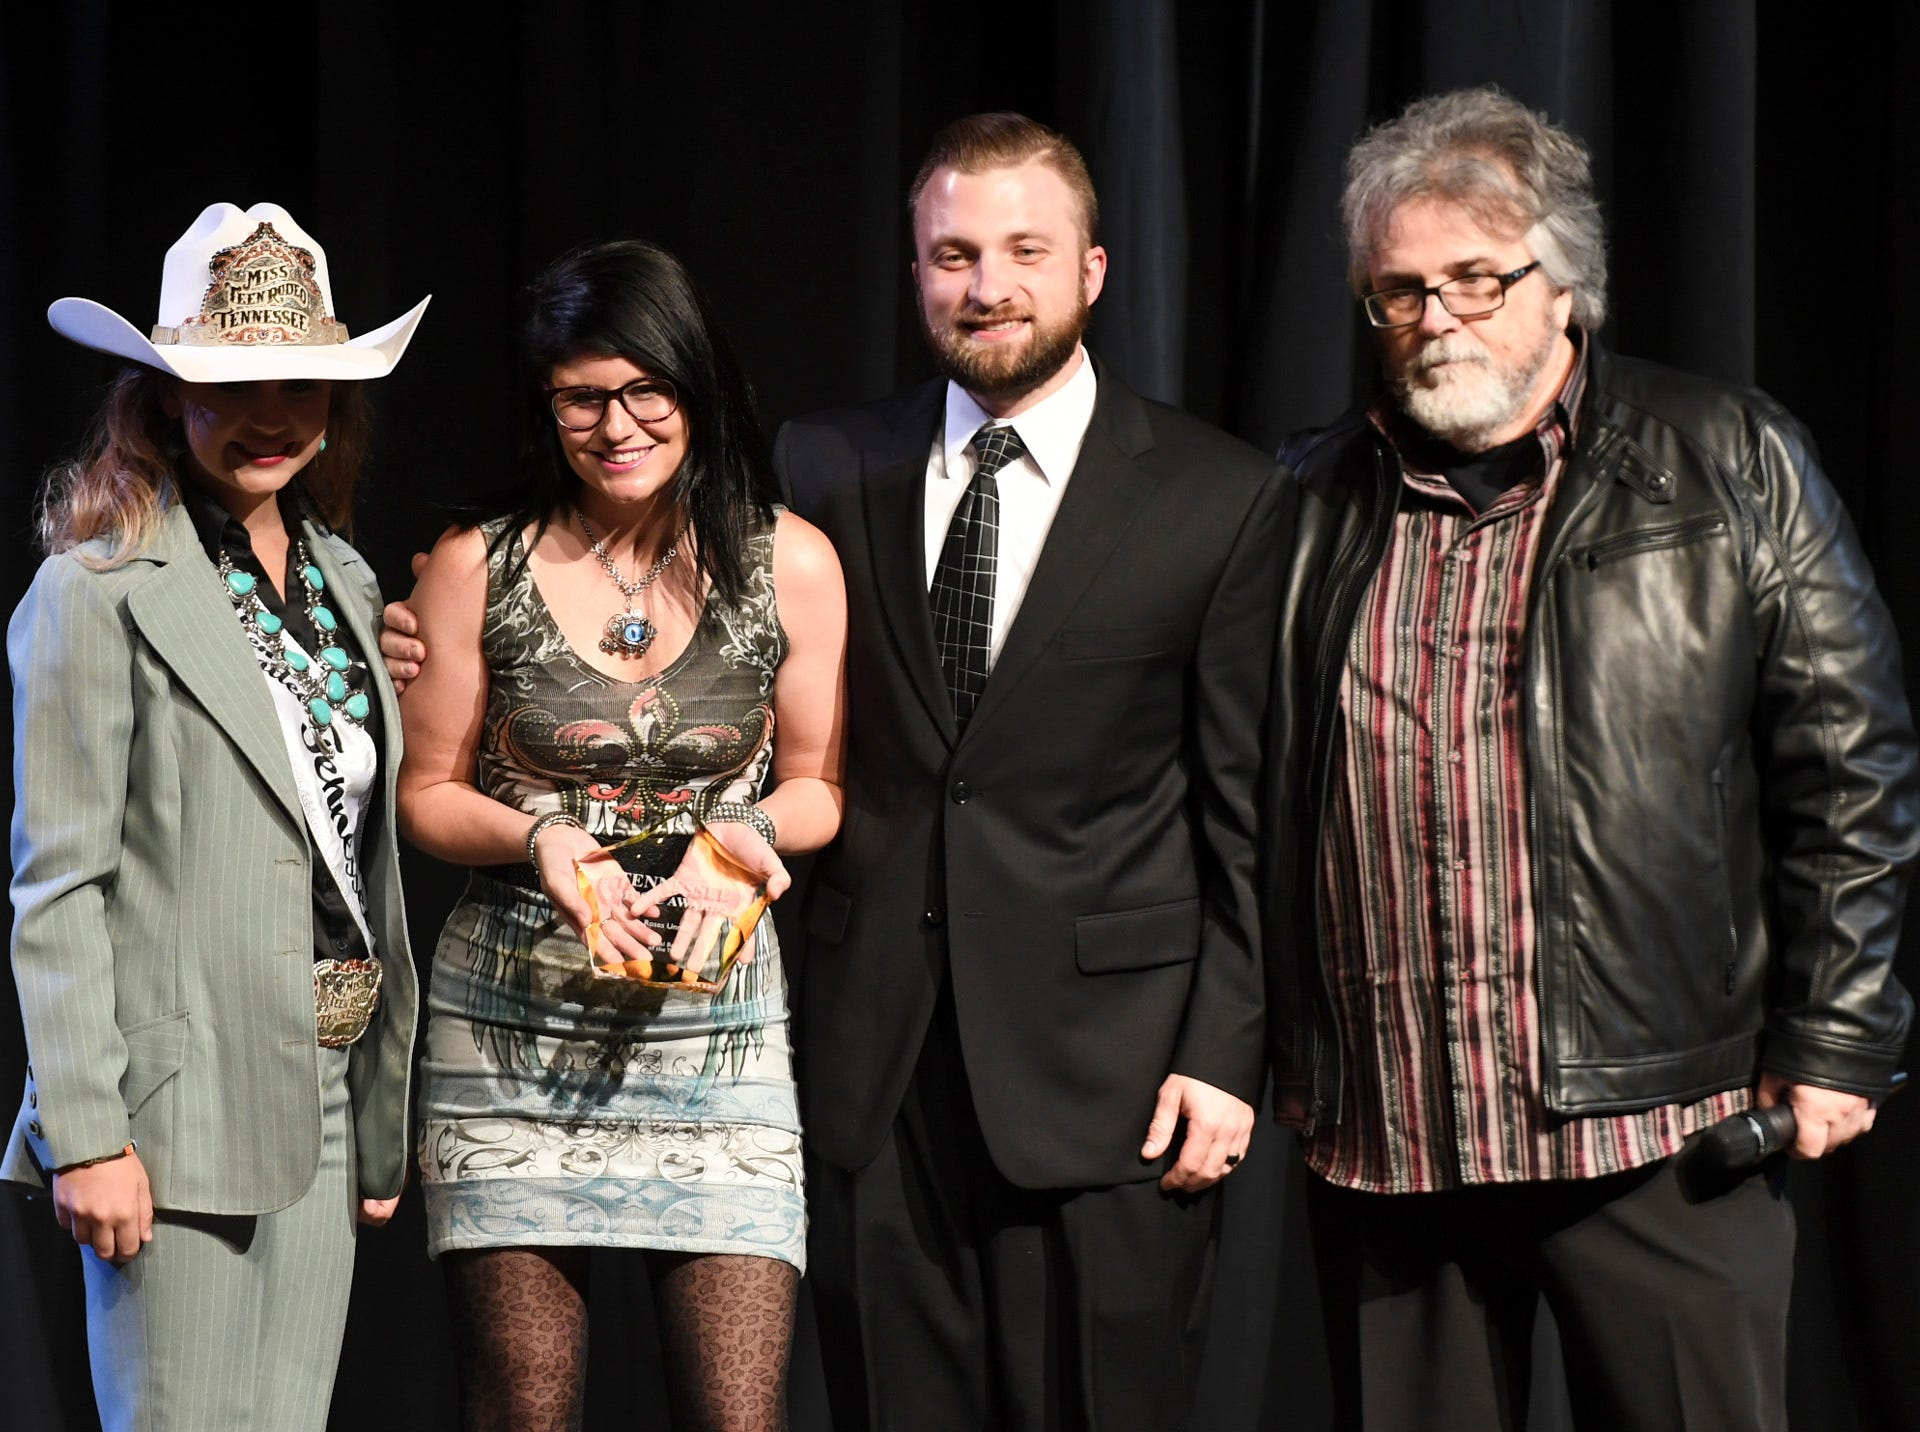 Roses Unread received the award for Metal Band of the Year at the 2nd Annual Tennessee Music Awards, Monday, October 8, at University of Memphis Lambuth.